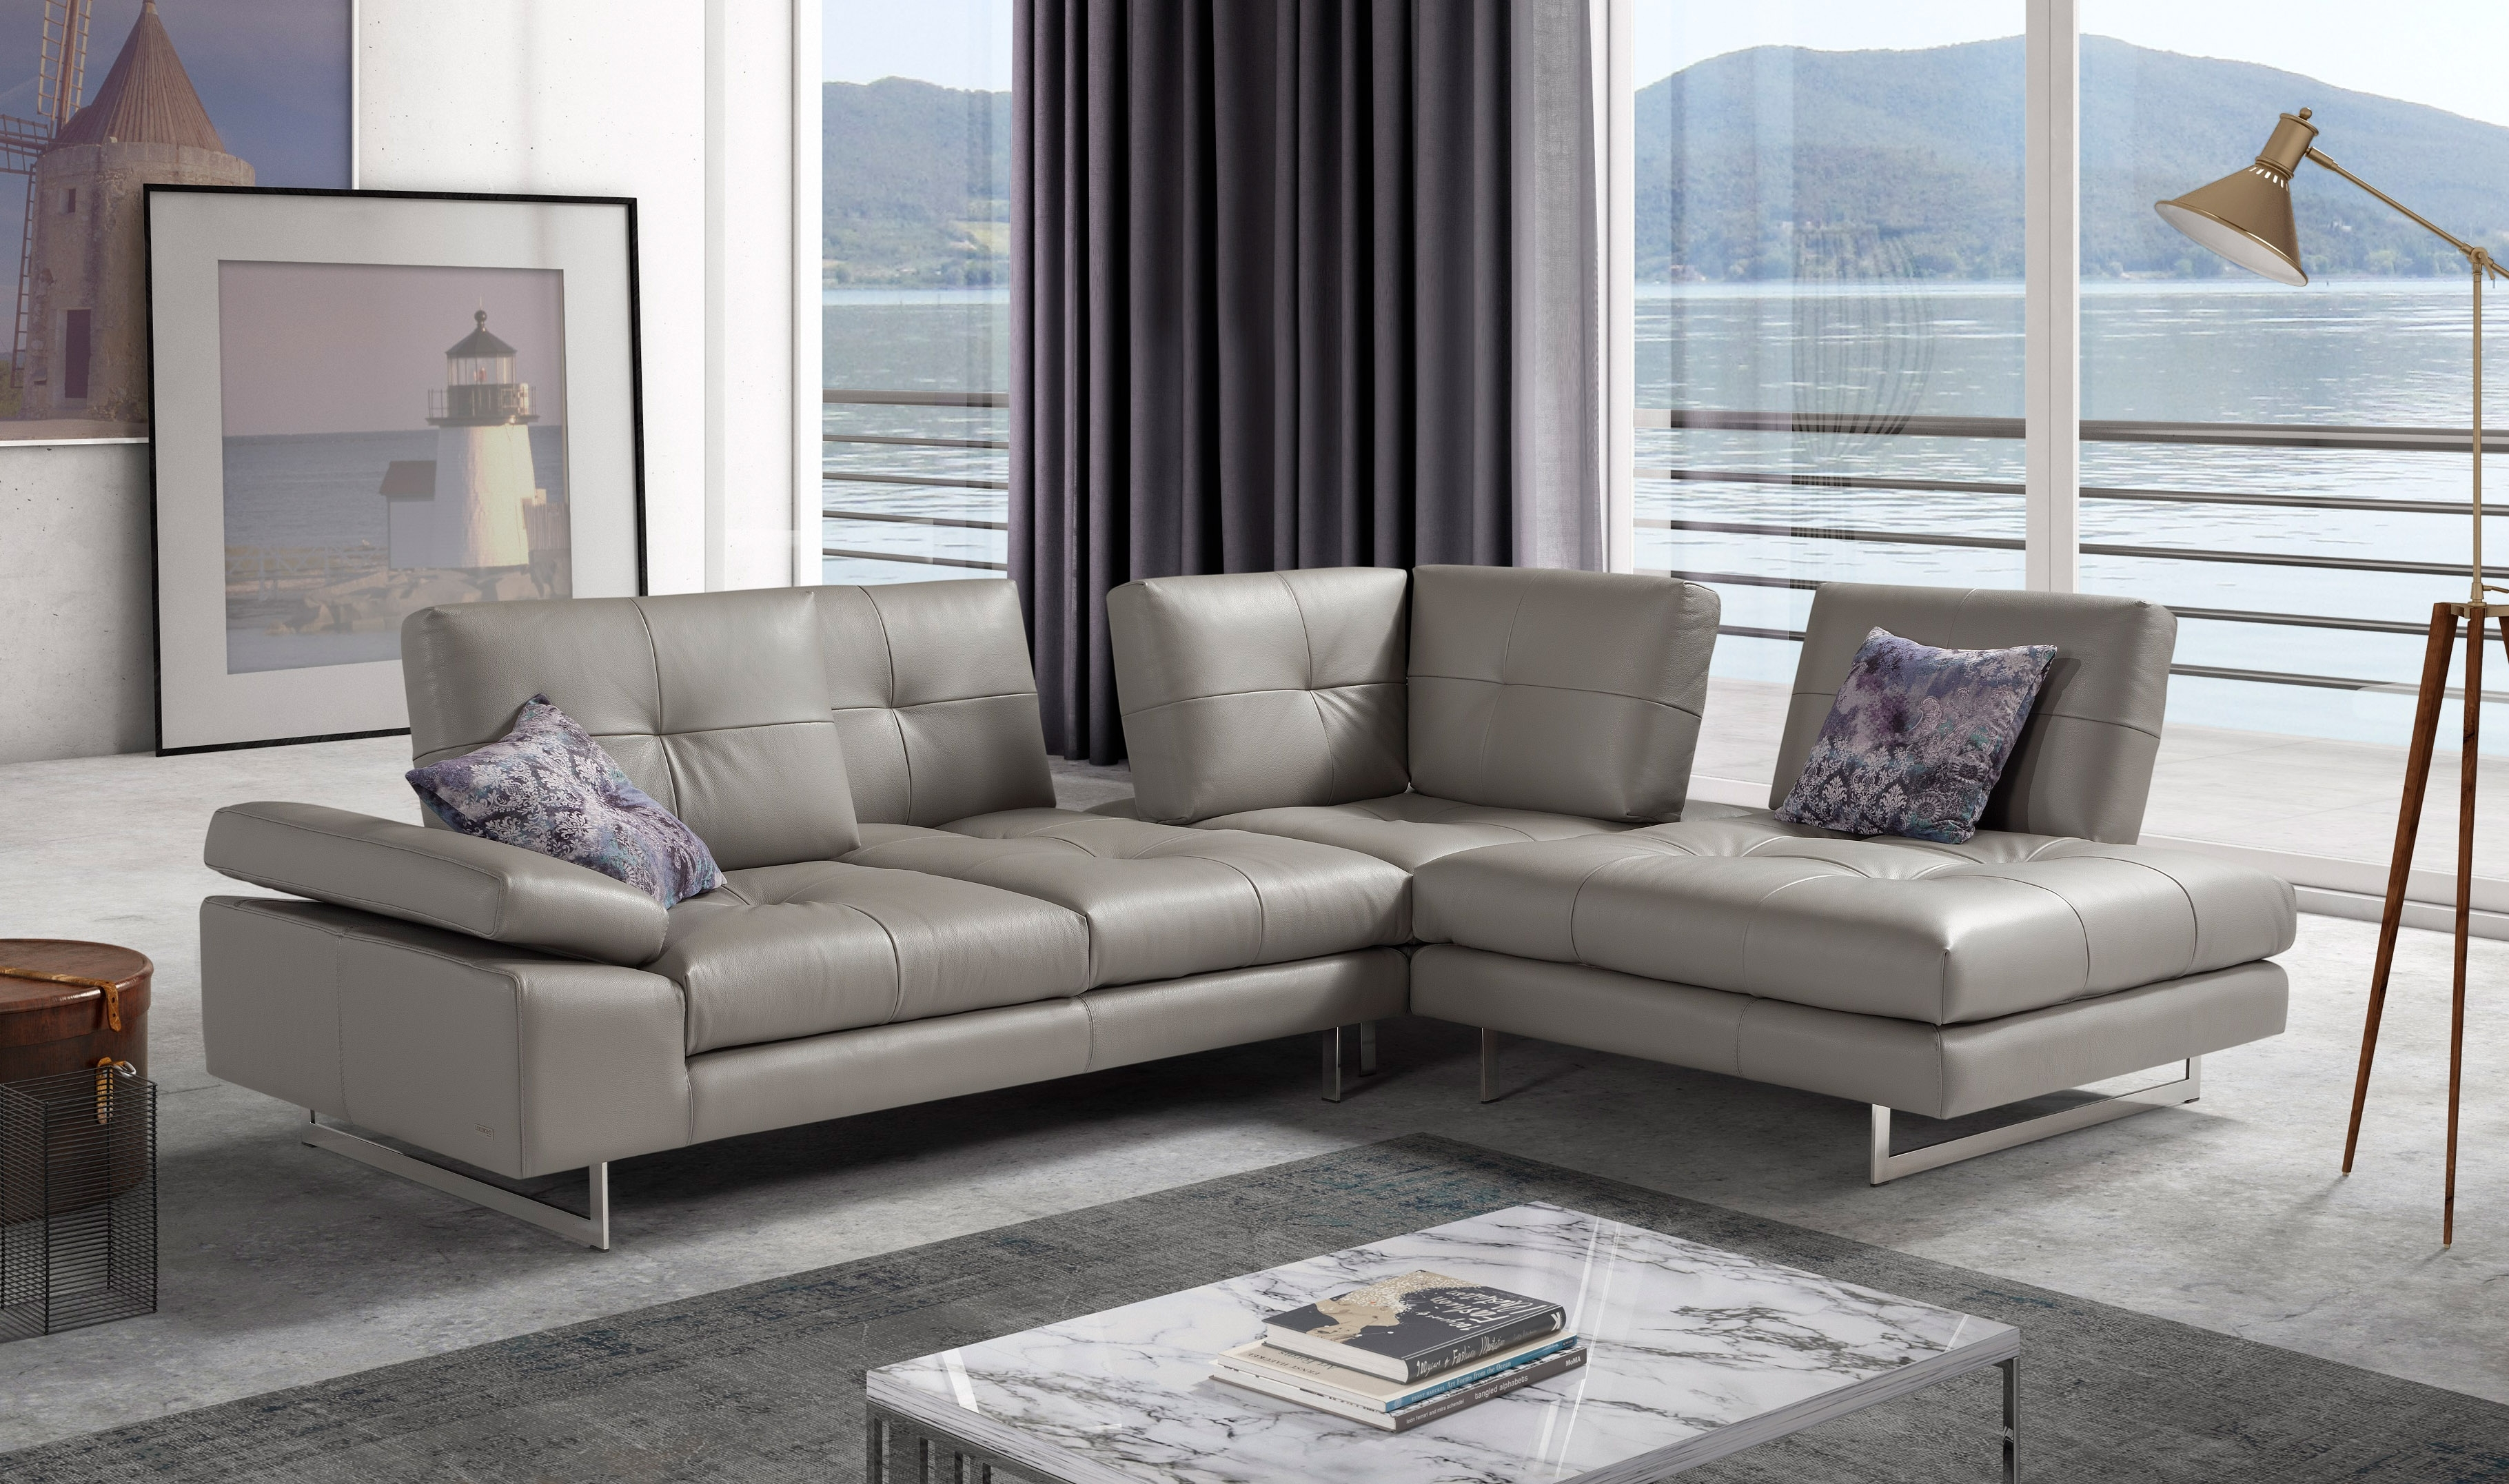 Advanced Adjustable Tufted Leather Sectional With Chaise Aurora Within Aurora 2 Piece Sectionals (Image 2 of 25)